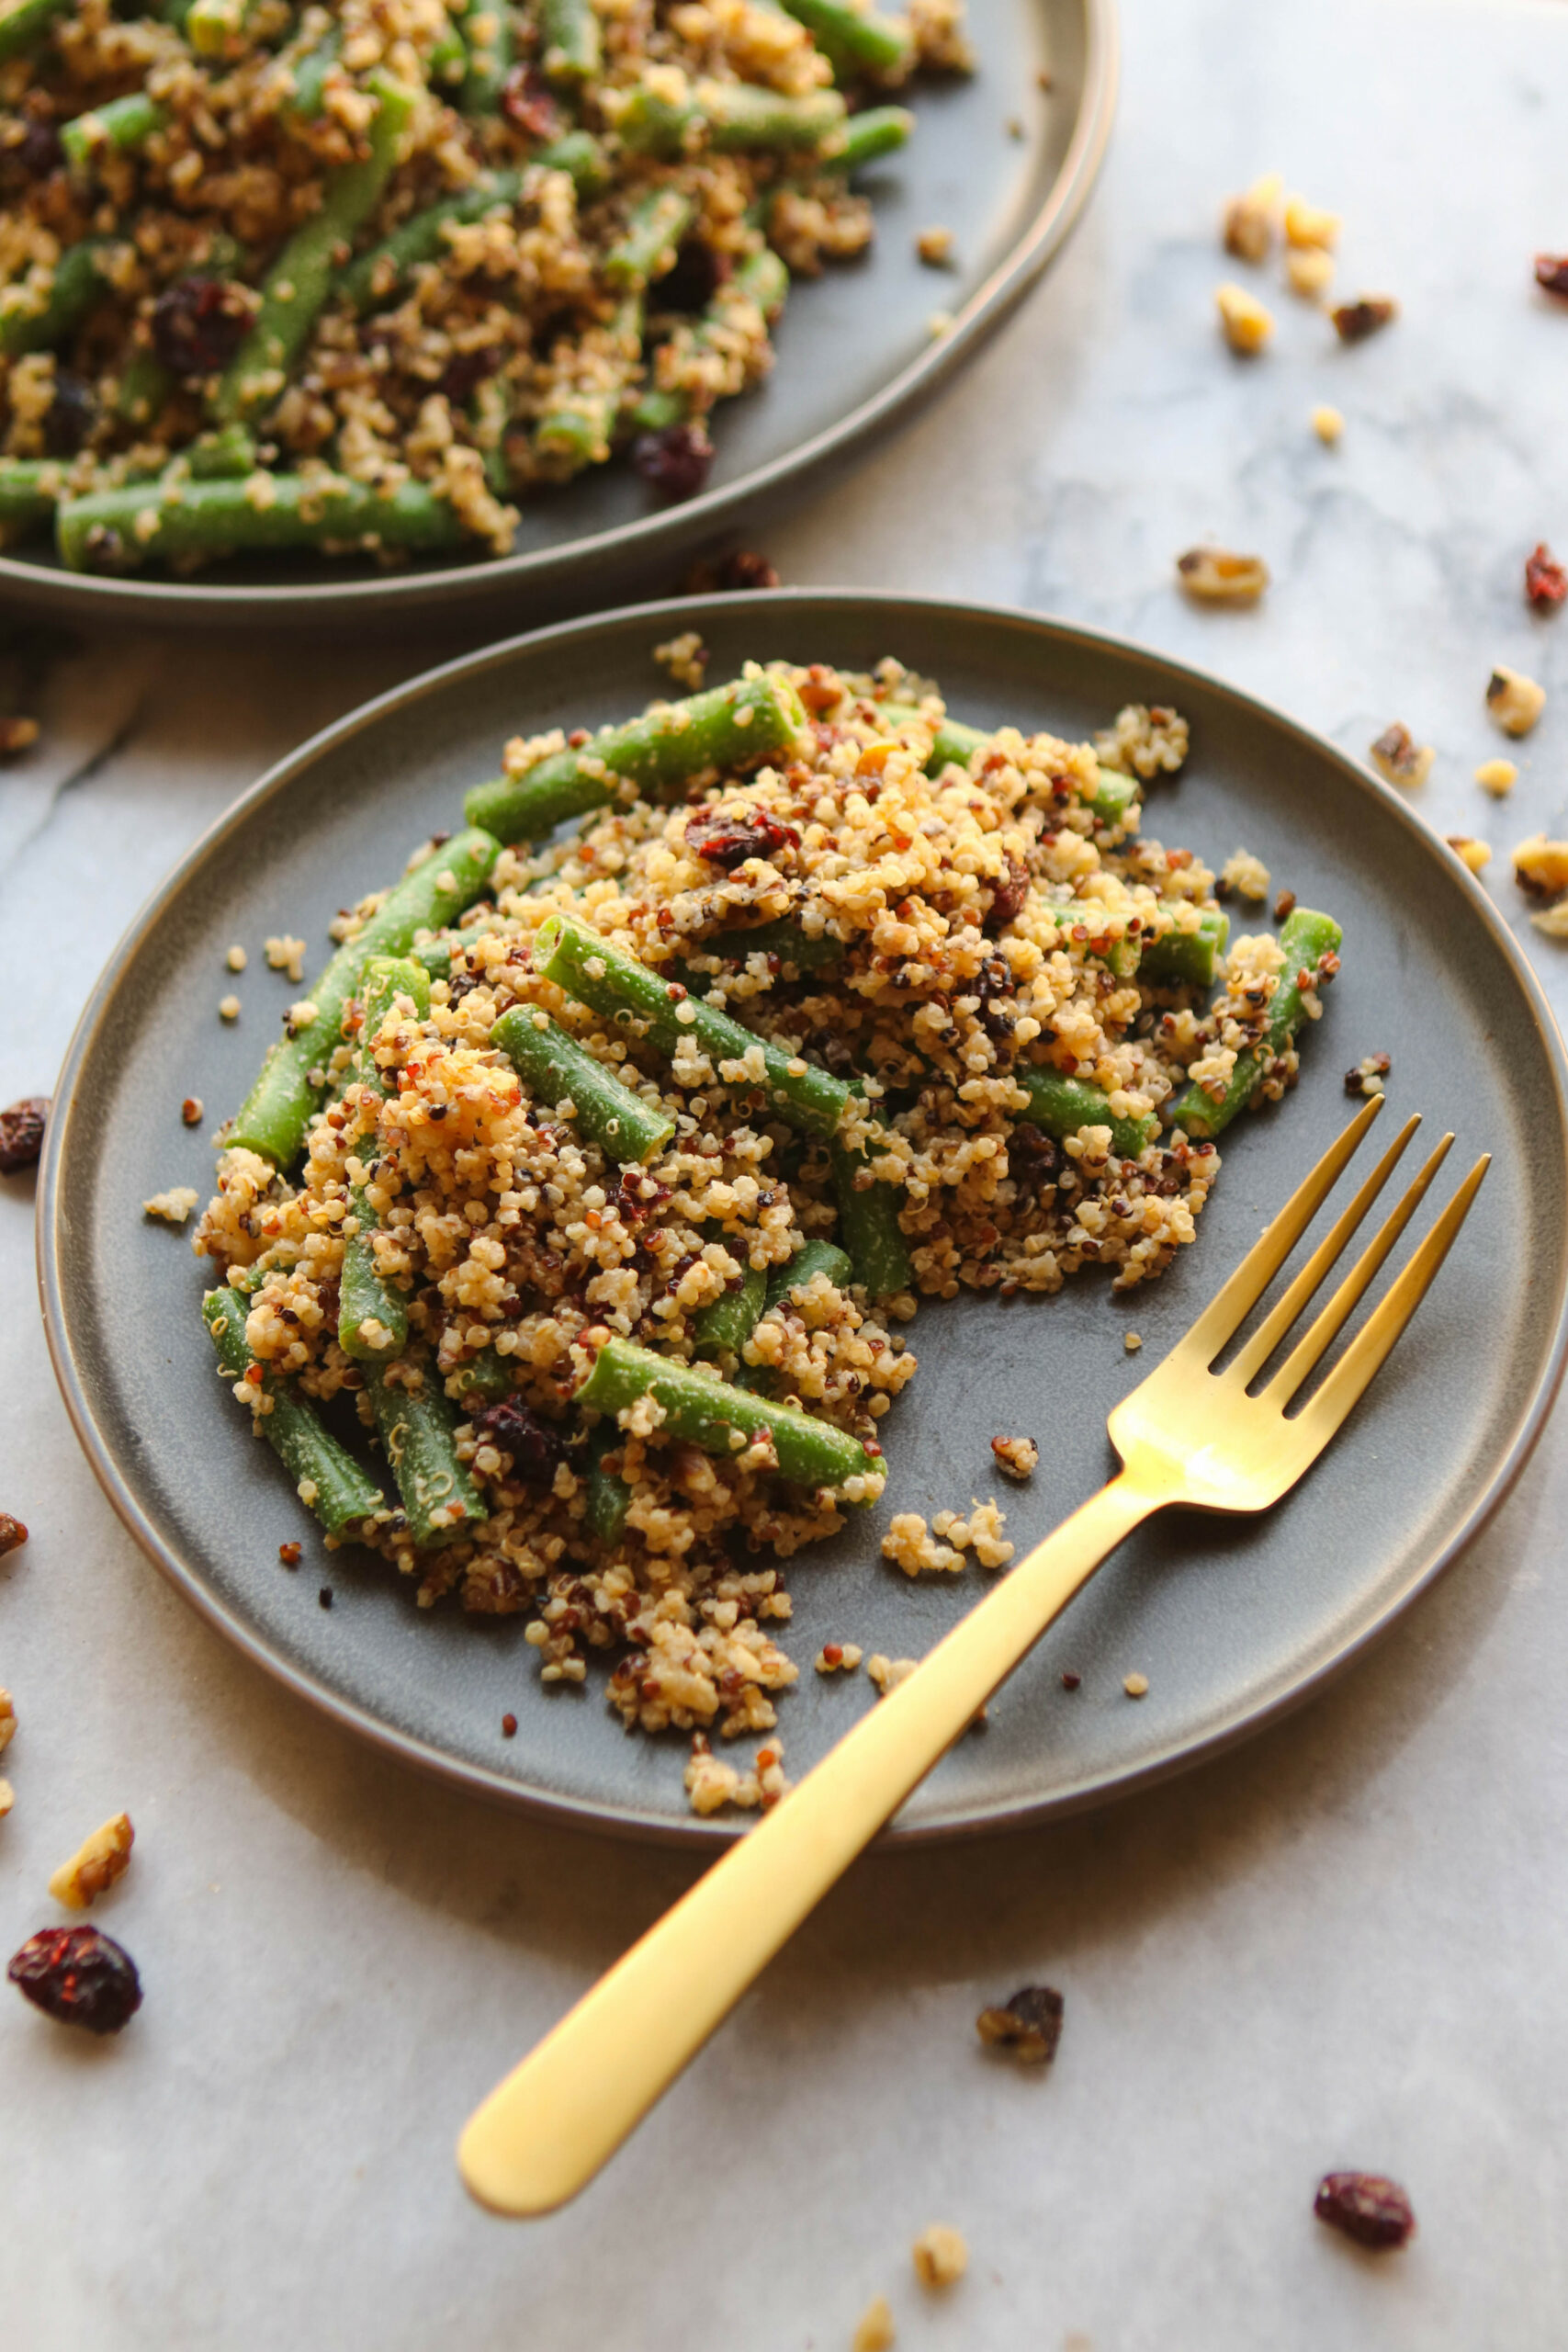 Green Bean, Cranberry, And Quinoa Salad - From My Bowl - Gluten Free Vegetarian Xmas Recipes